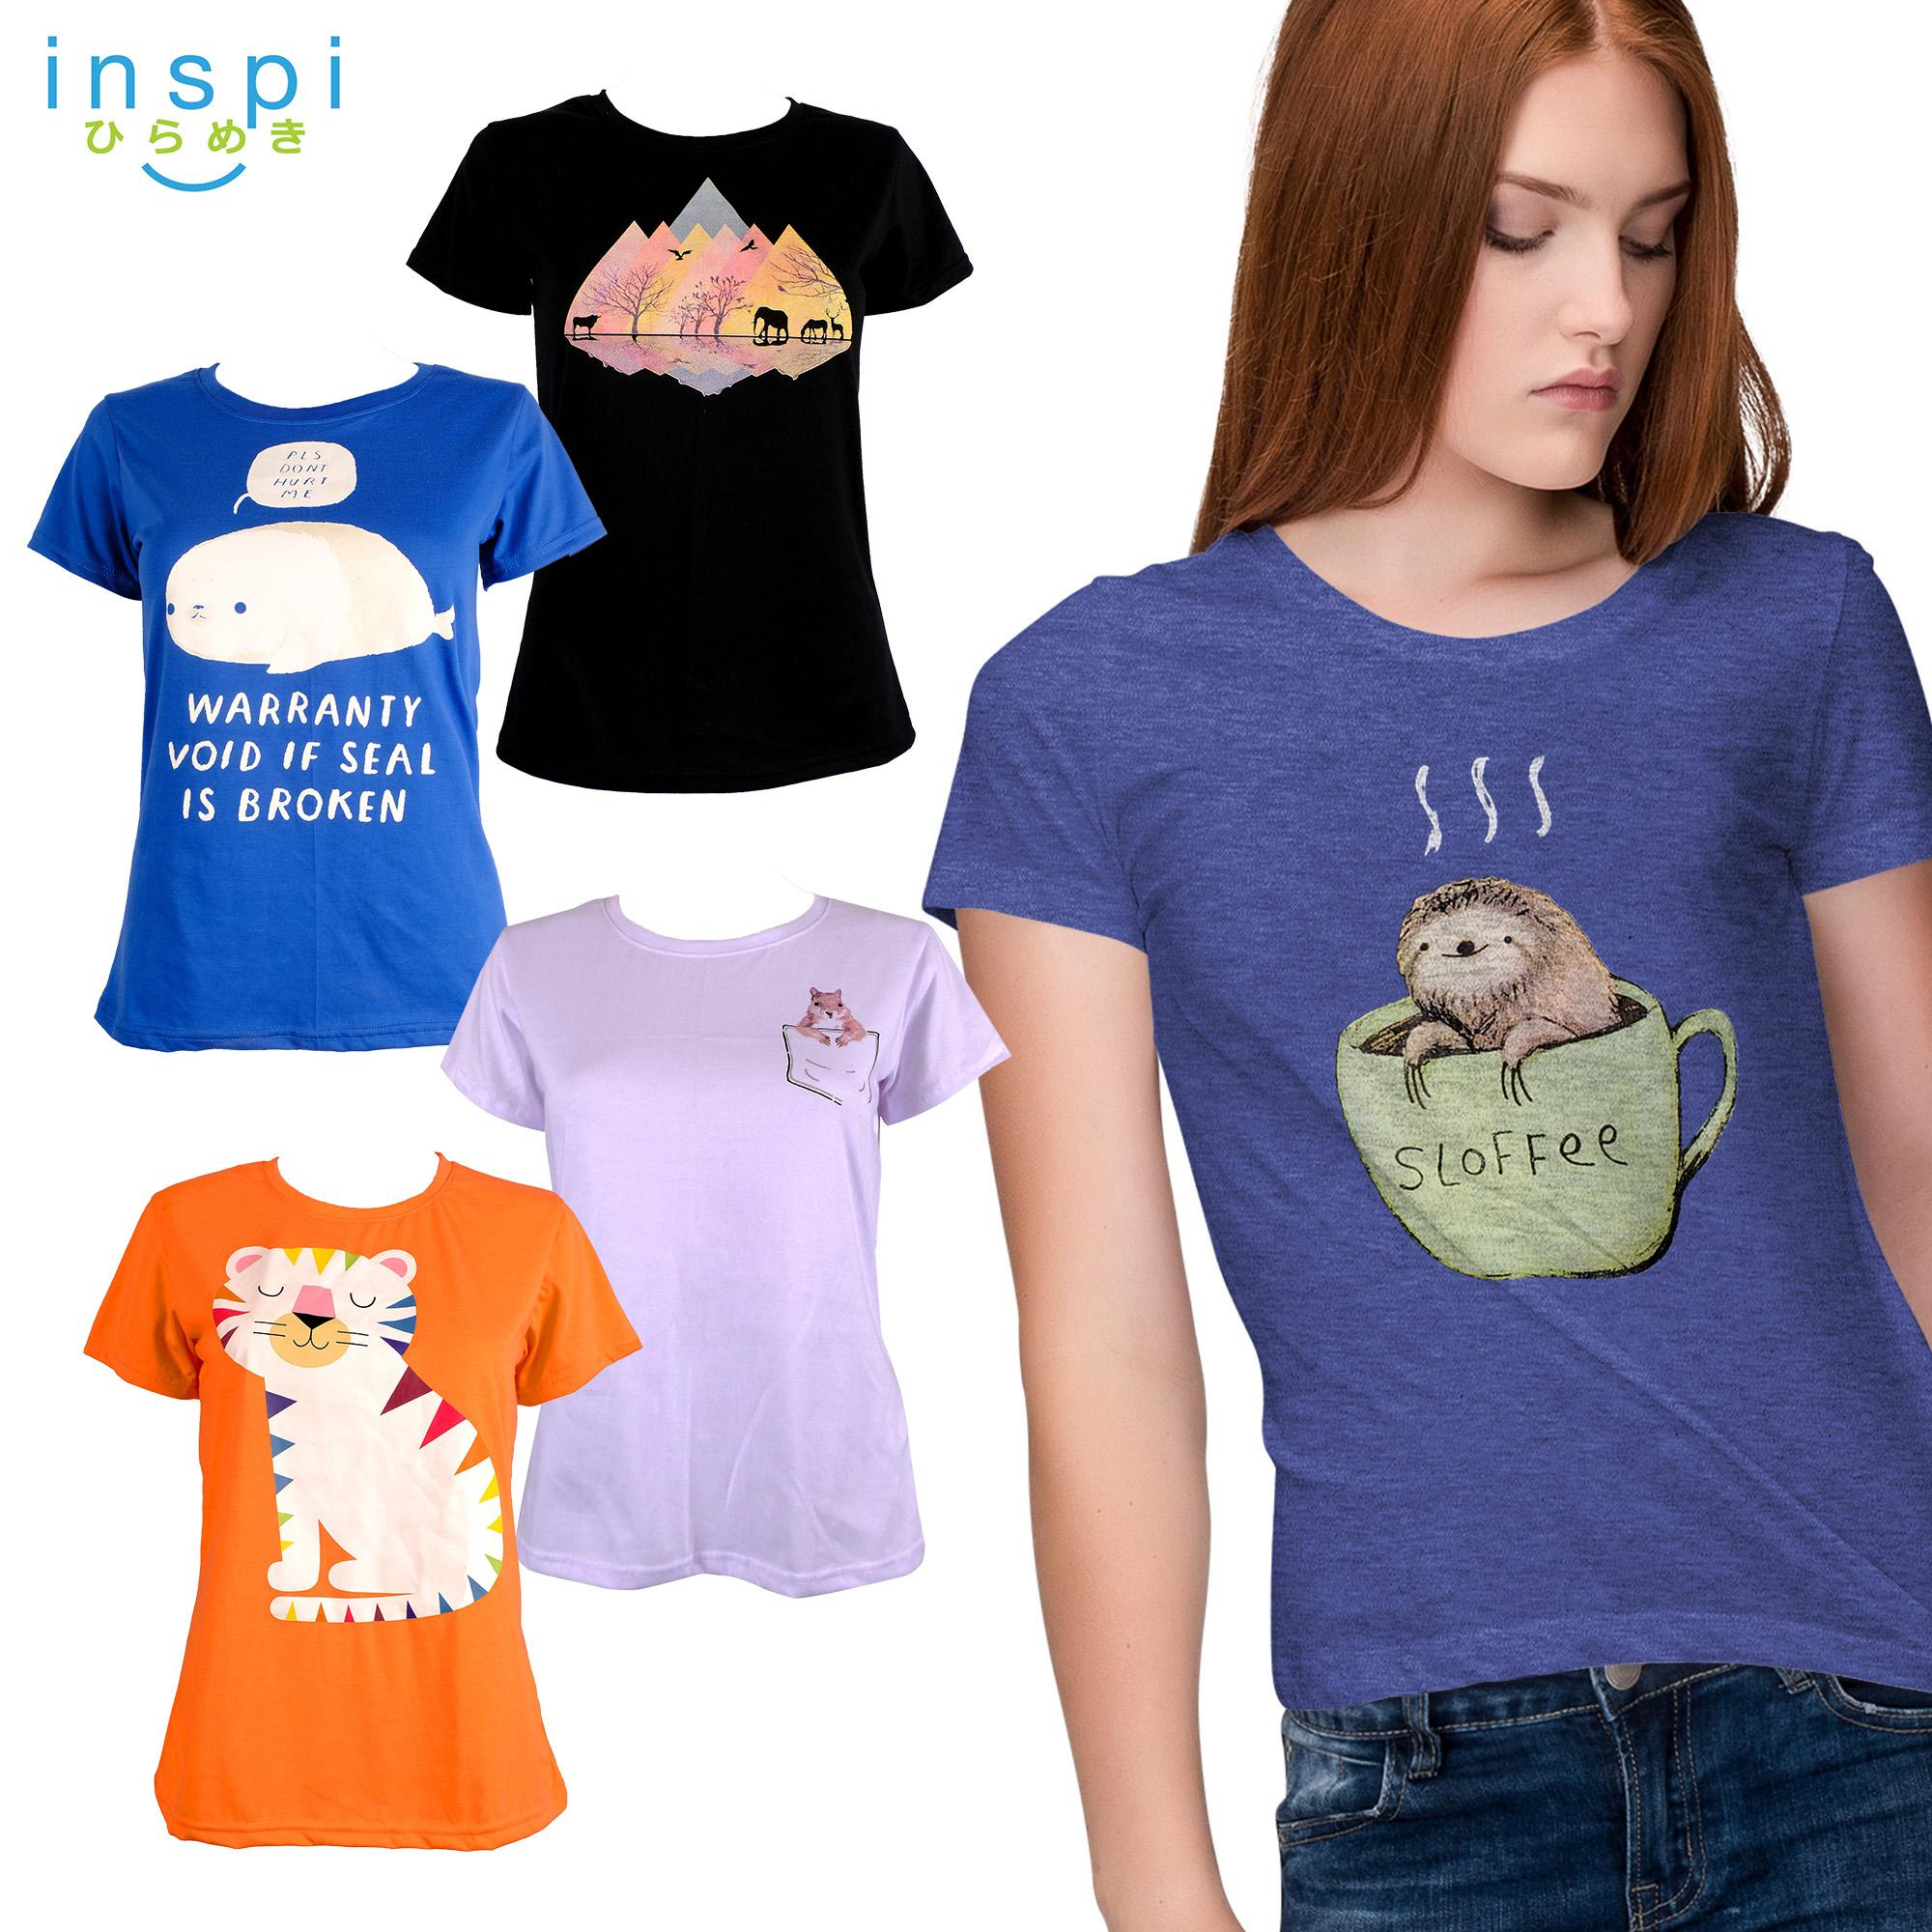 41a8e34164b28 INSPI Tees Ladies Pet Collection tshirt printed graphic tee Ladies t shirt  shirts women tshirts for